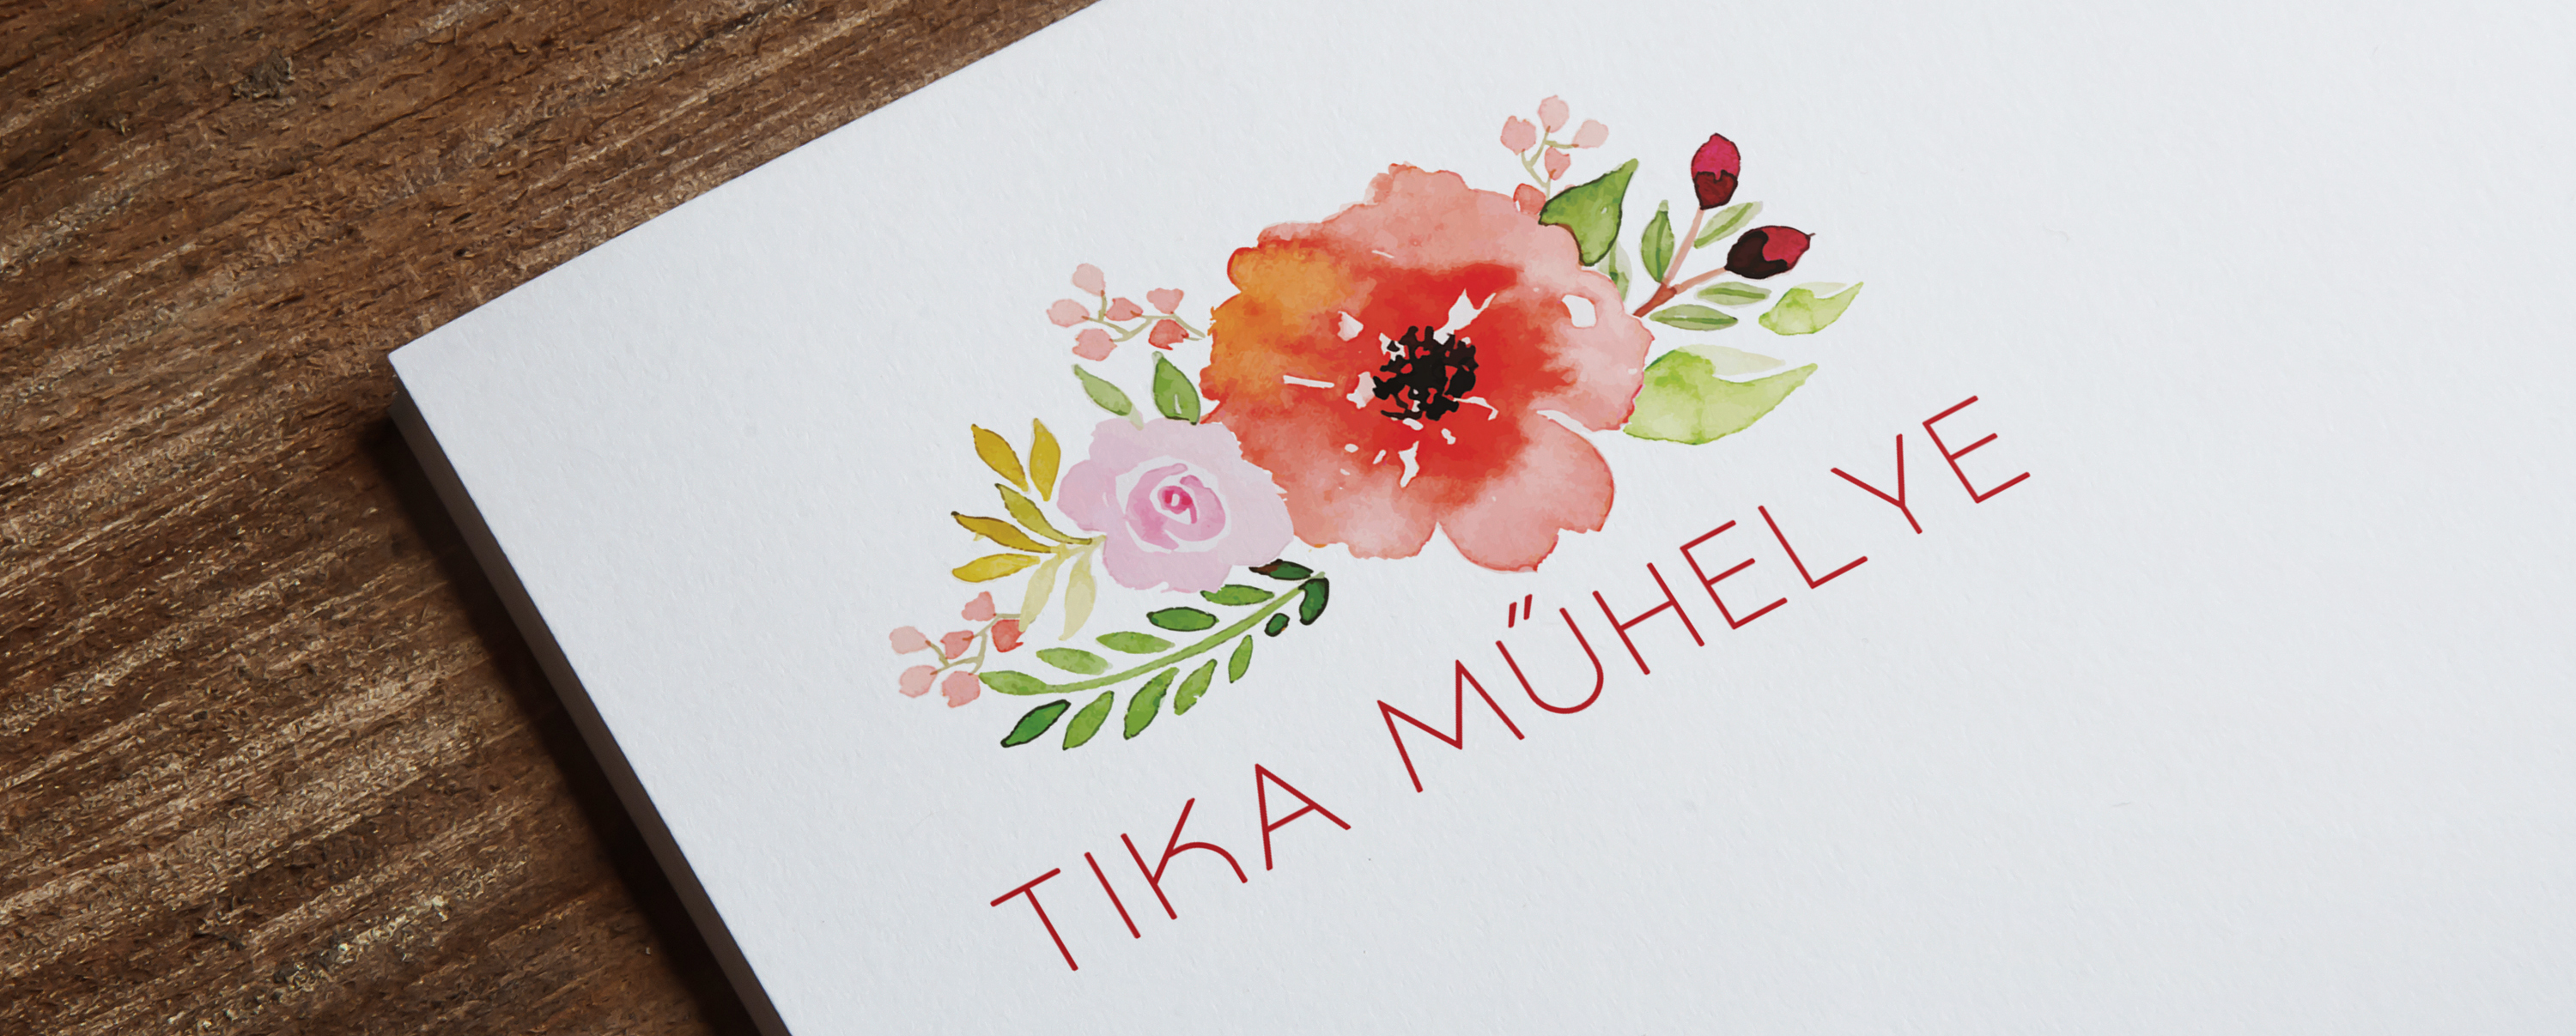 Tika - logo design concepts (final logo design)